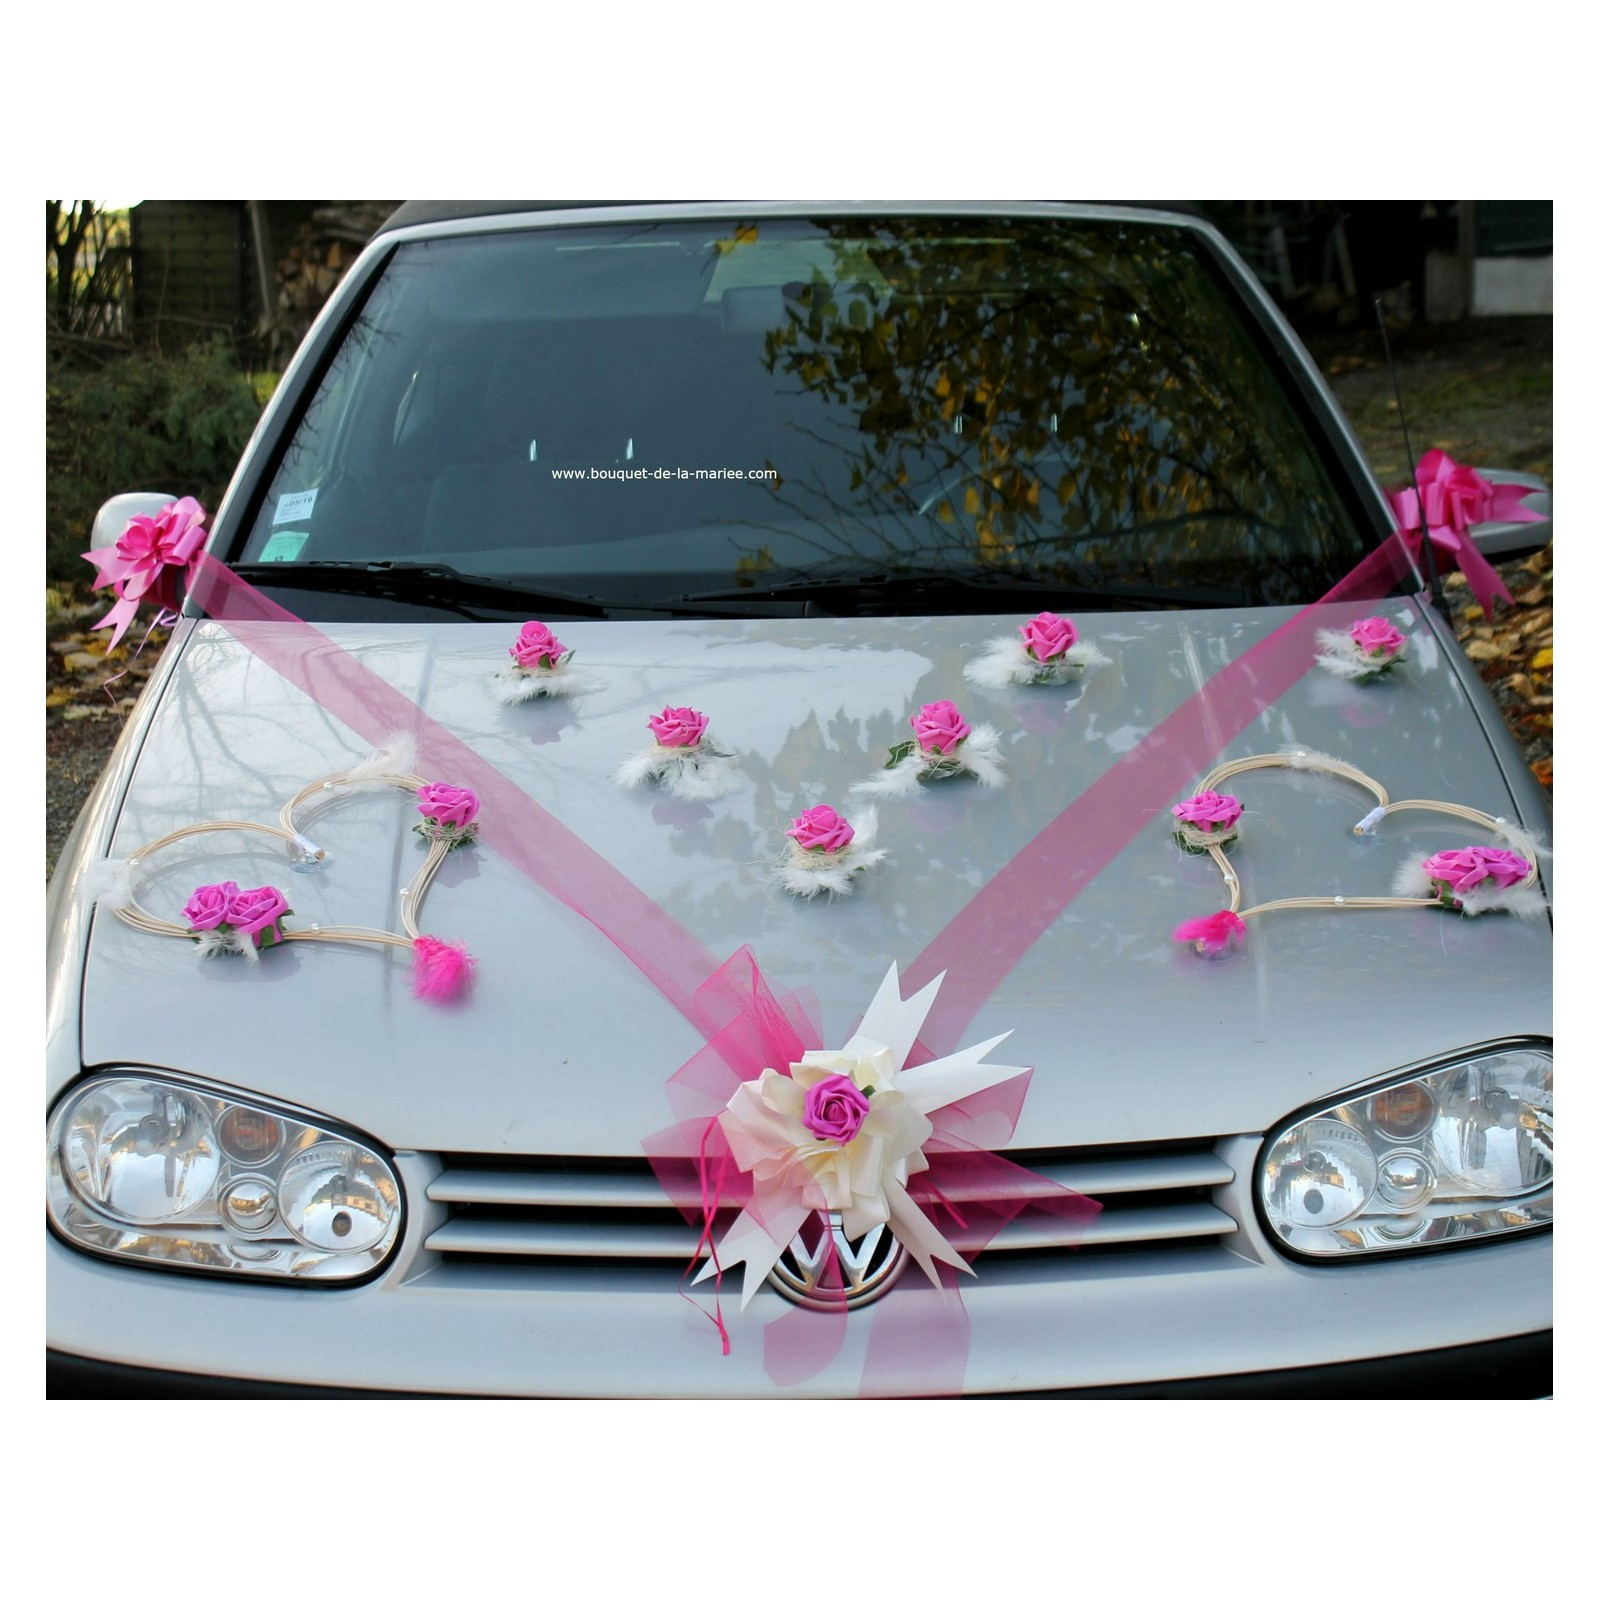 Decoration Mariage Voiture Tulle Décoration Voiture Mariage Coeurs Tulle Ruban Fuchsia